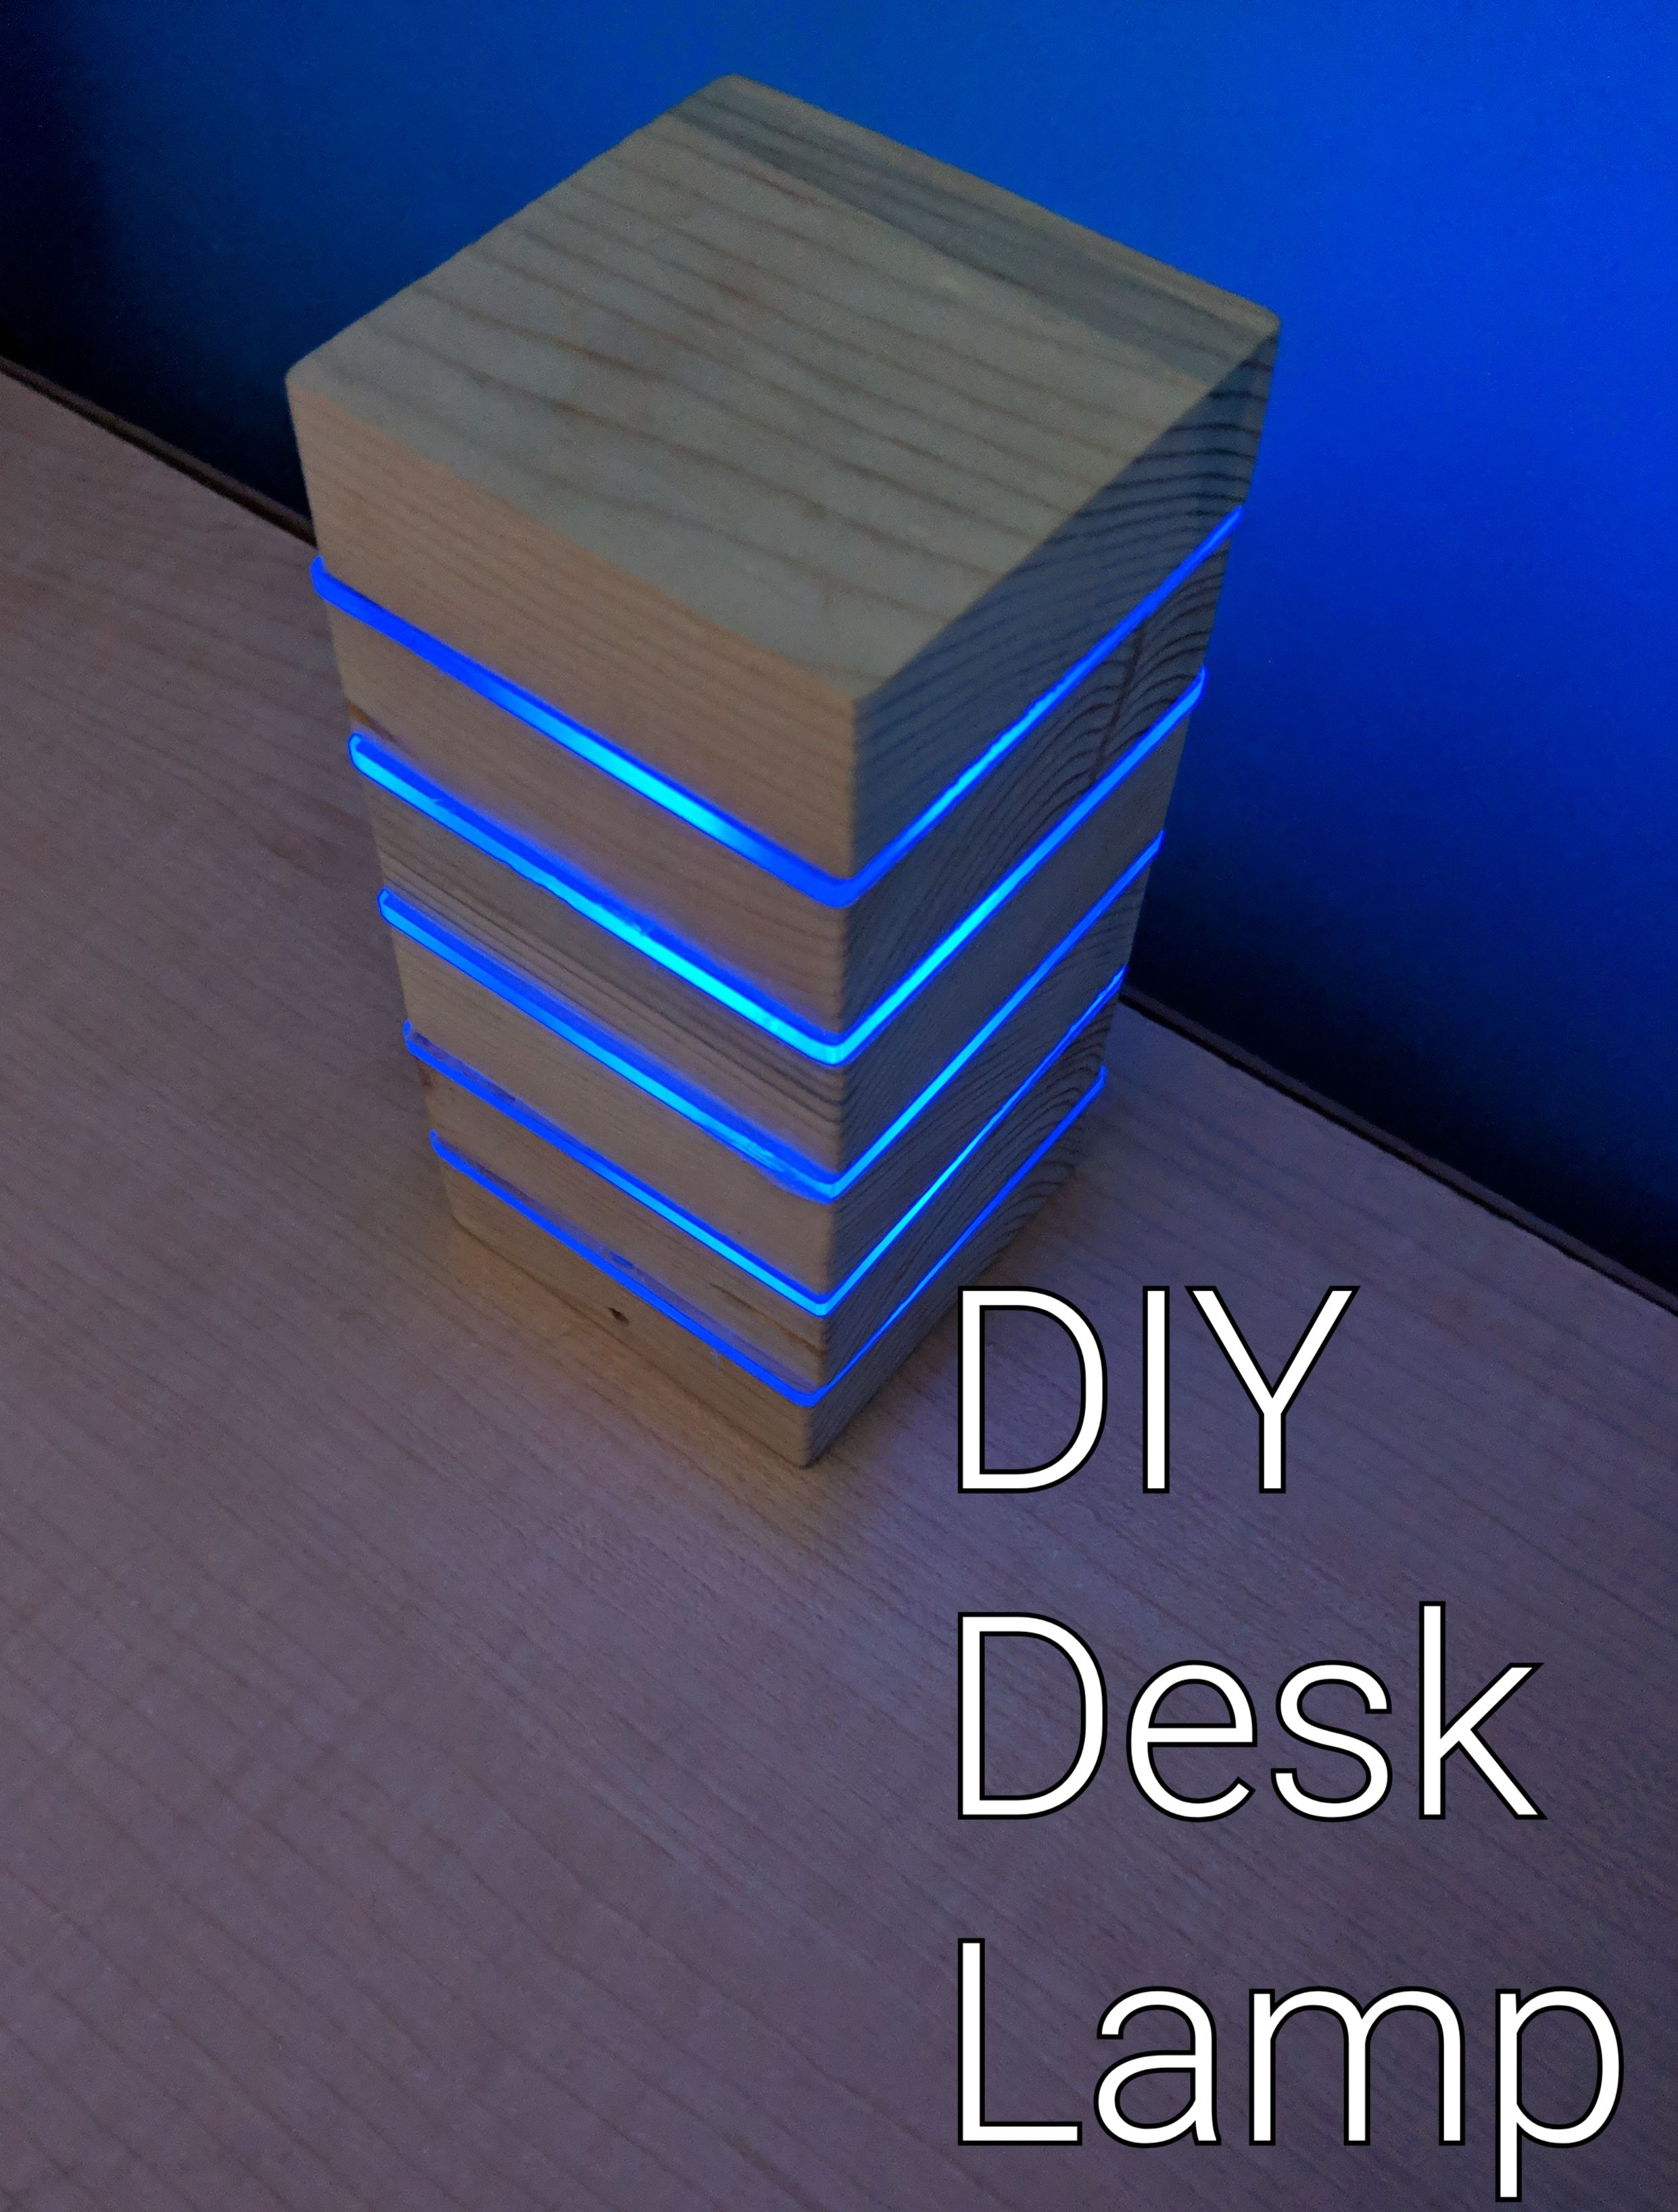 DIY LED Desk Lamp Made From Recycled Pallets | Top Blogs